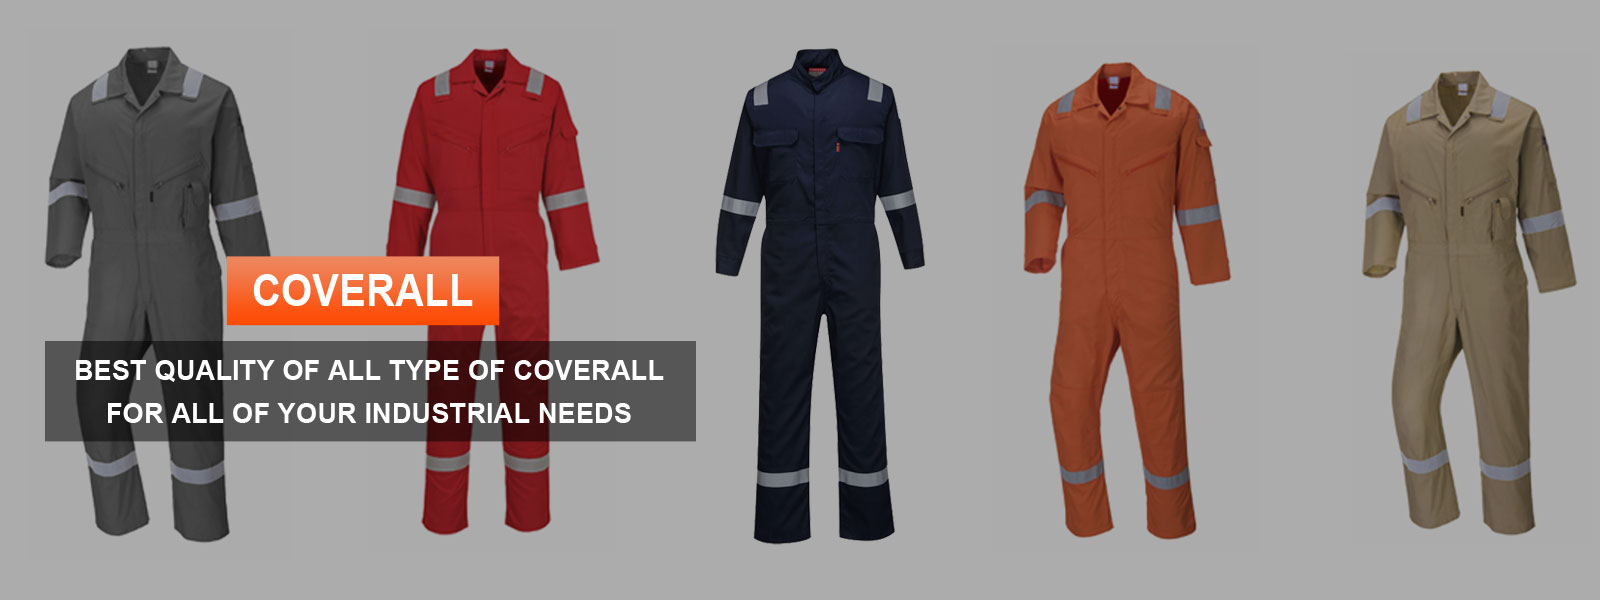 Coverall Manufacturers in Saint lucia